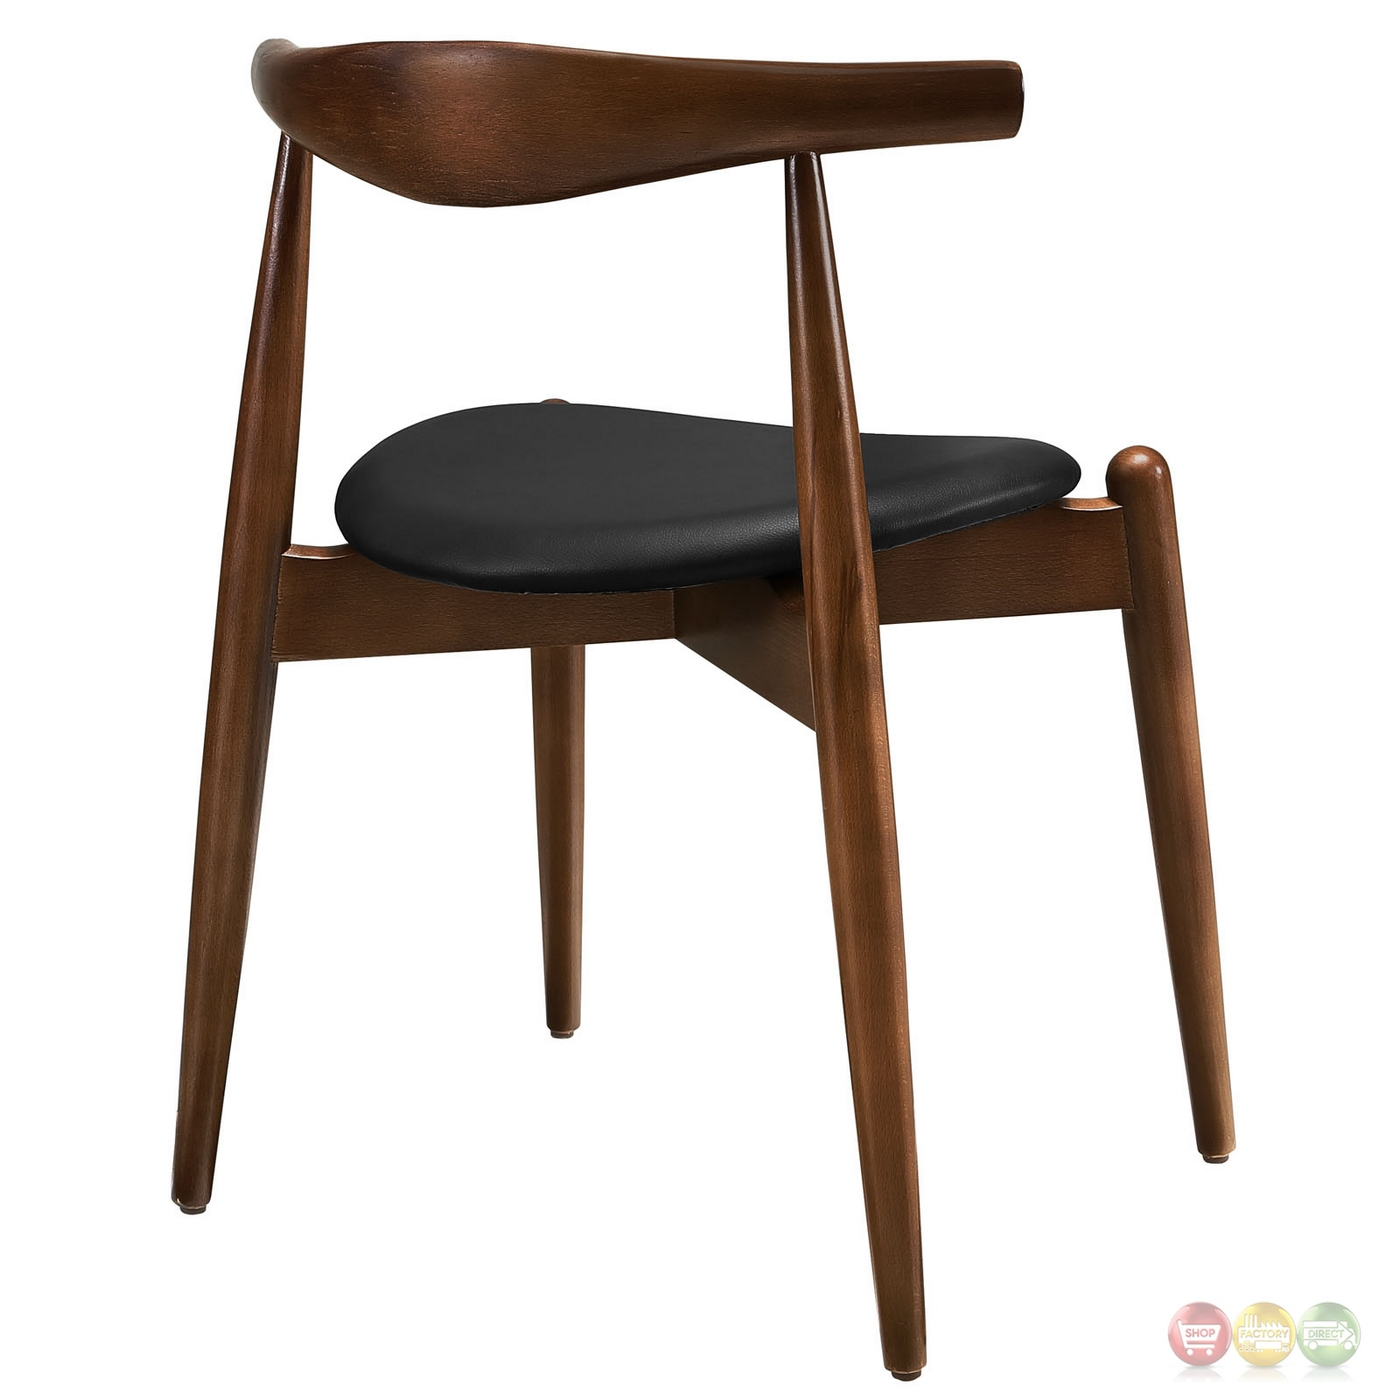 Wonderful image of  Wood Dining Side Chairs w/ Upholstered Seats Dark Walnut Black with #963537 color and 1400x1400 pixels